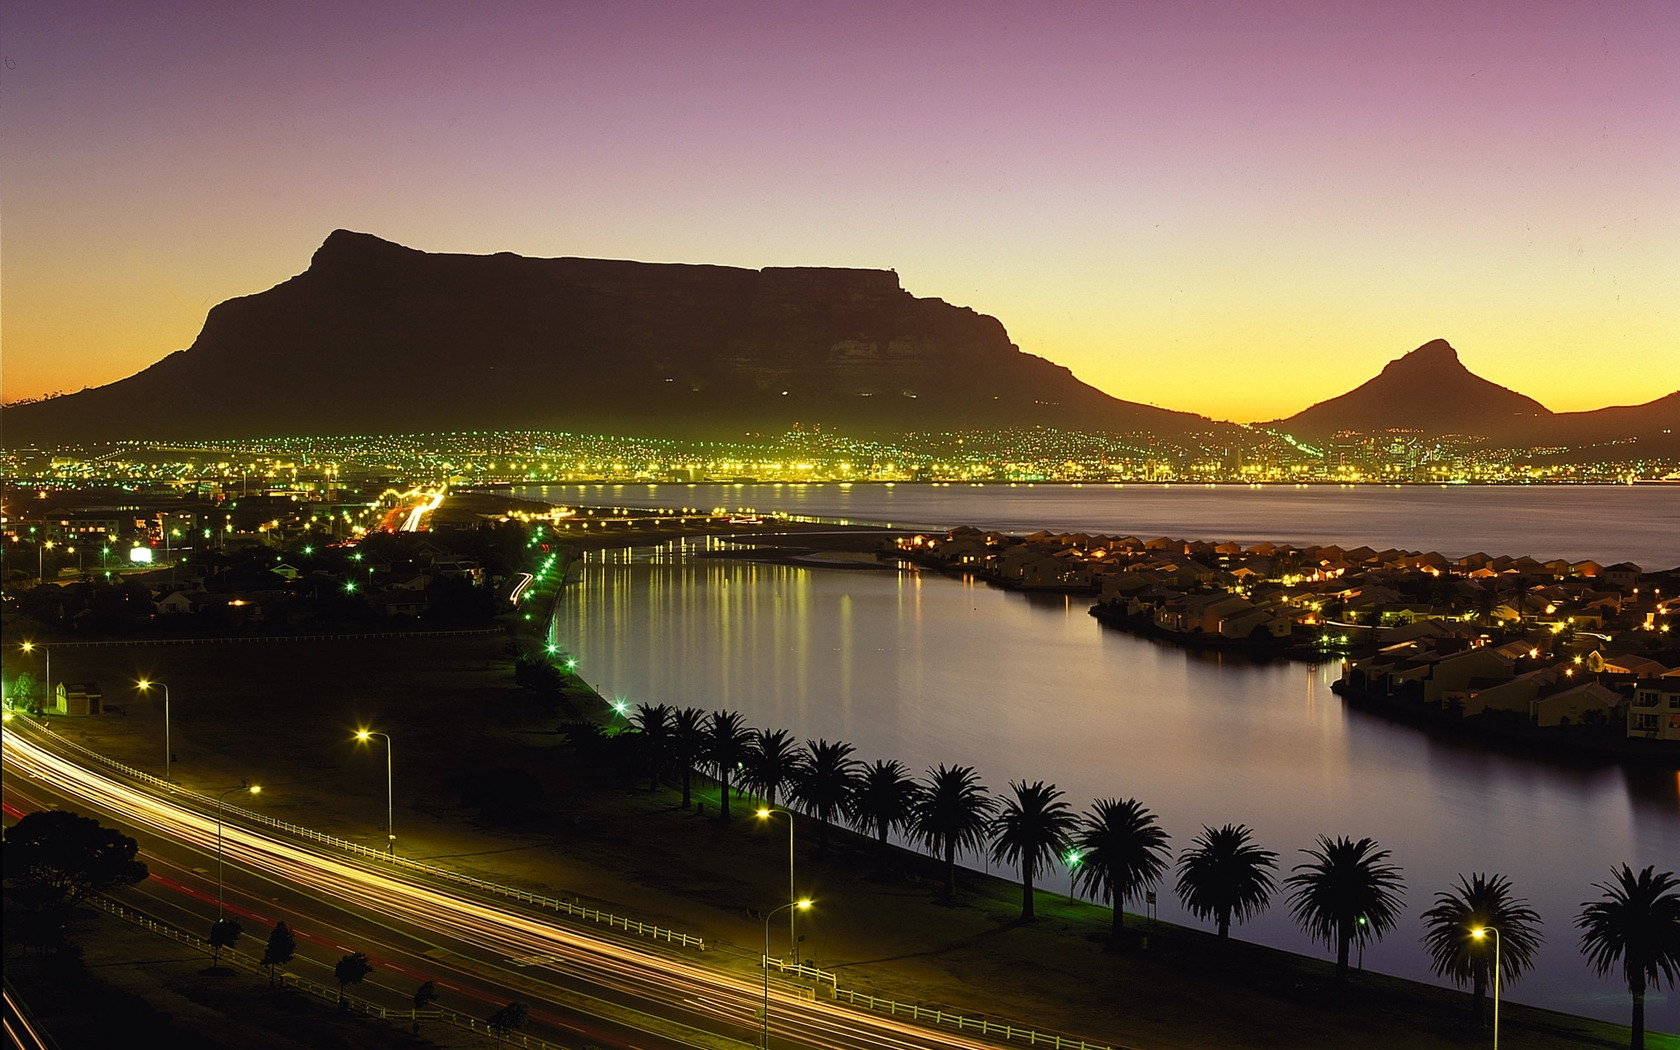 1680x1050 Wallpaper cape town south africa night lights palm trees 1680x1050